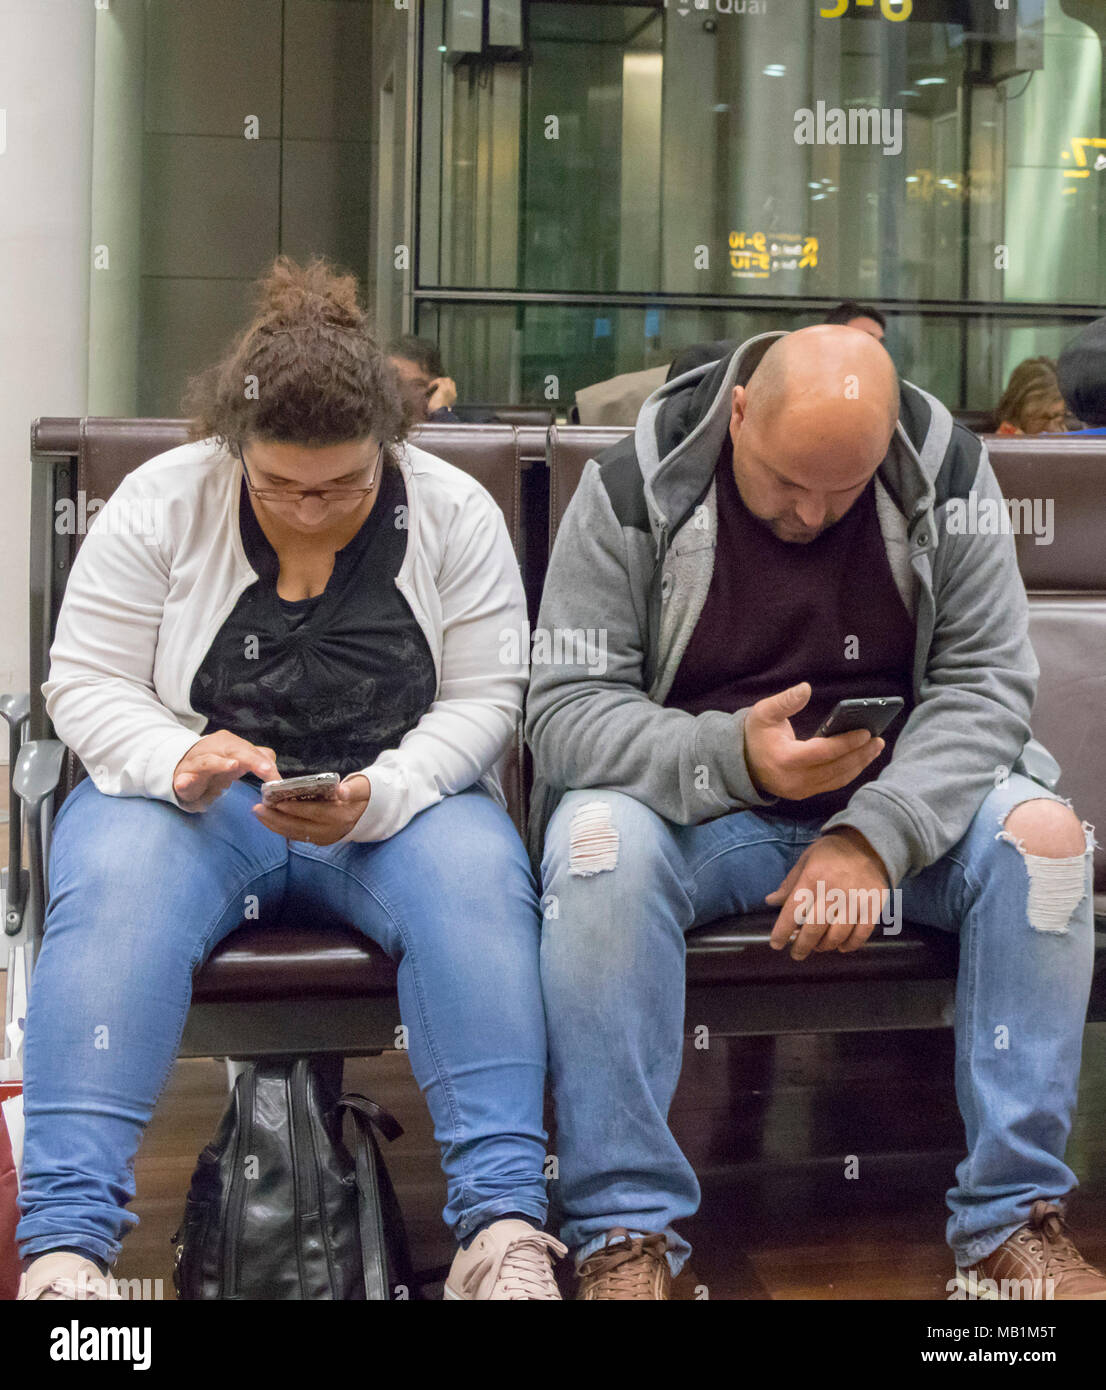 people in Eurostar waiting room of St Pancras station, London, England, all using mobile phones - Stock Image